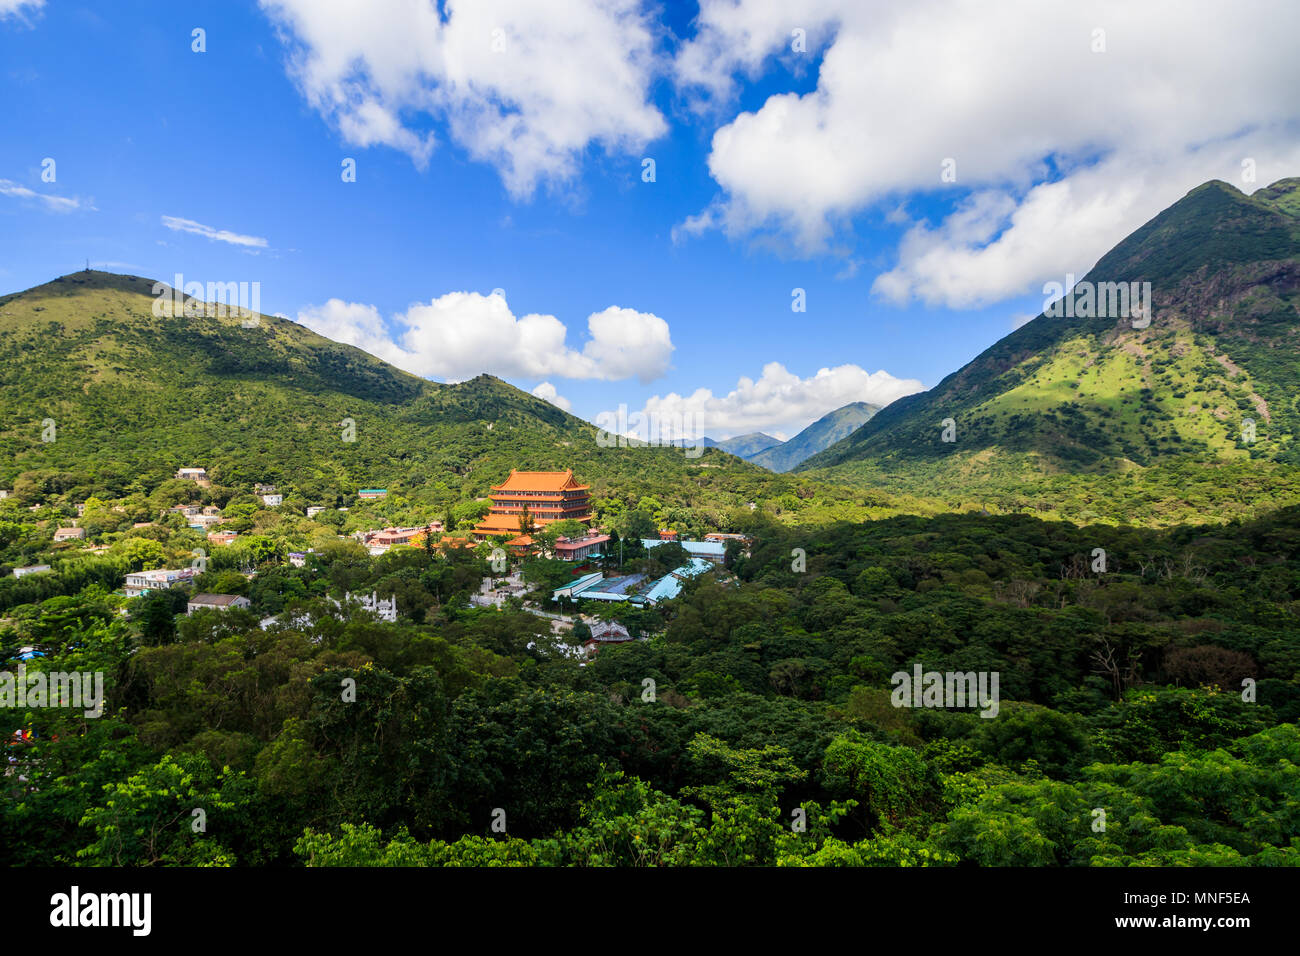 Hong Kong, 12 august 2017 - View of Po Lin Monastery and Mountains - Stock Image